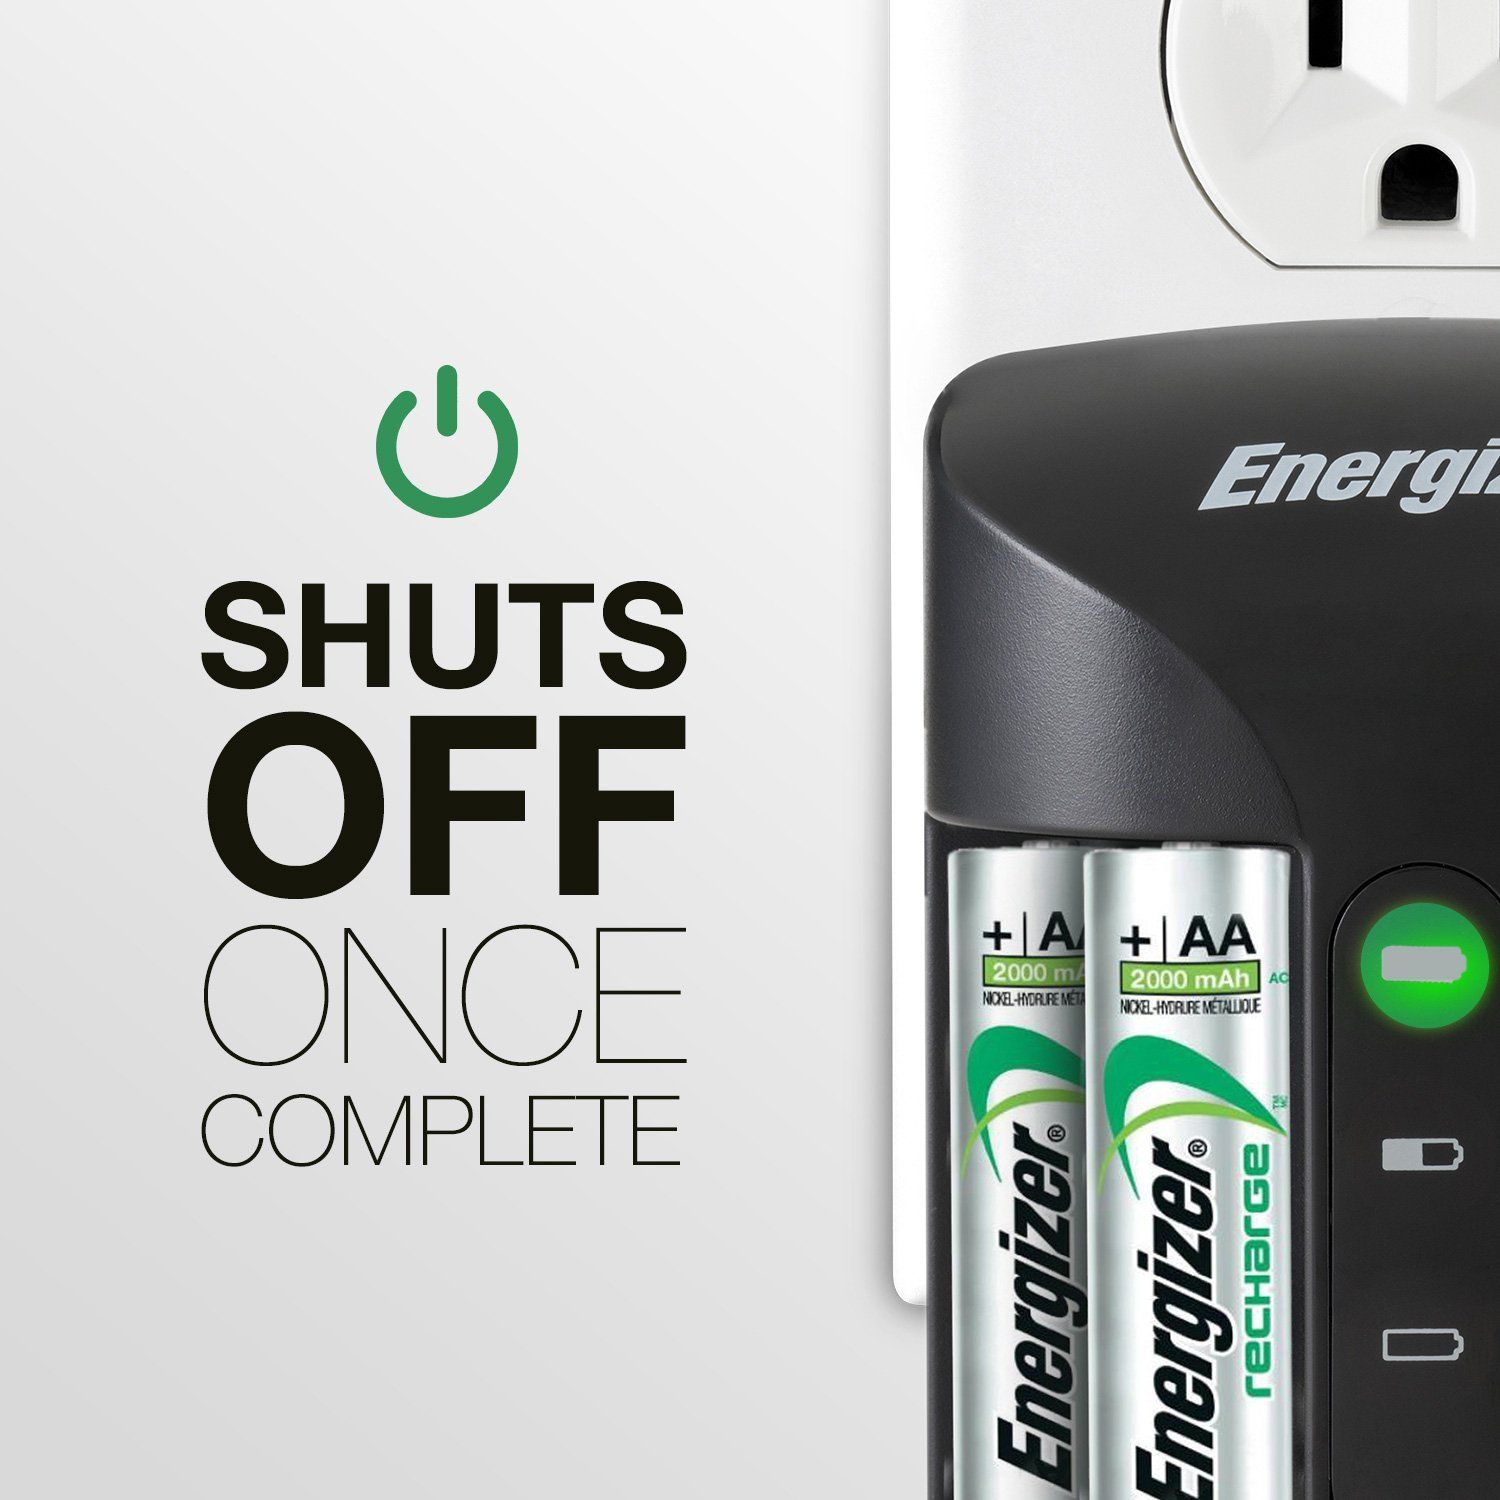 Energizer Rechargeable Aa And Aaa Battery Charger Recharge Pro With 4 Aa Nimh Rechargeable Batteries Aa Aaa Battery Charger Rechargeable Batteries Energizer